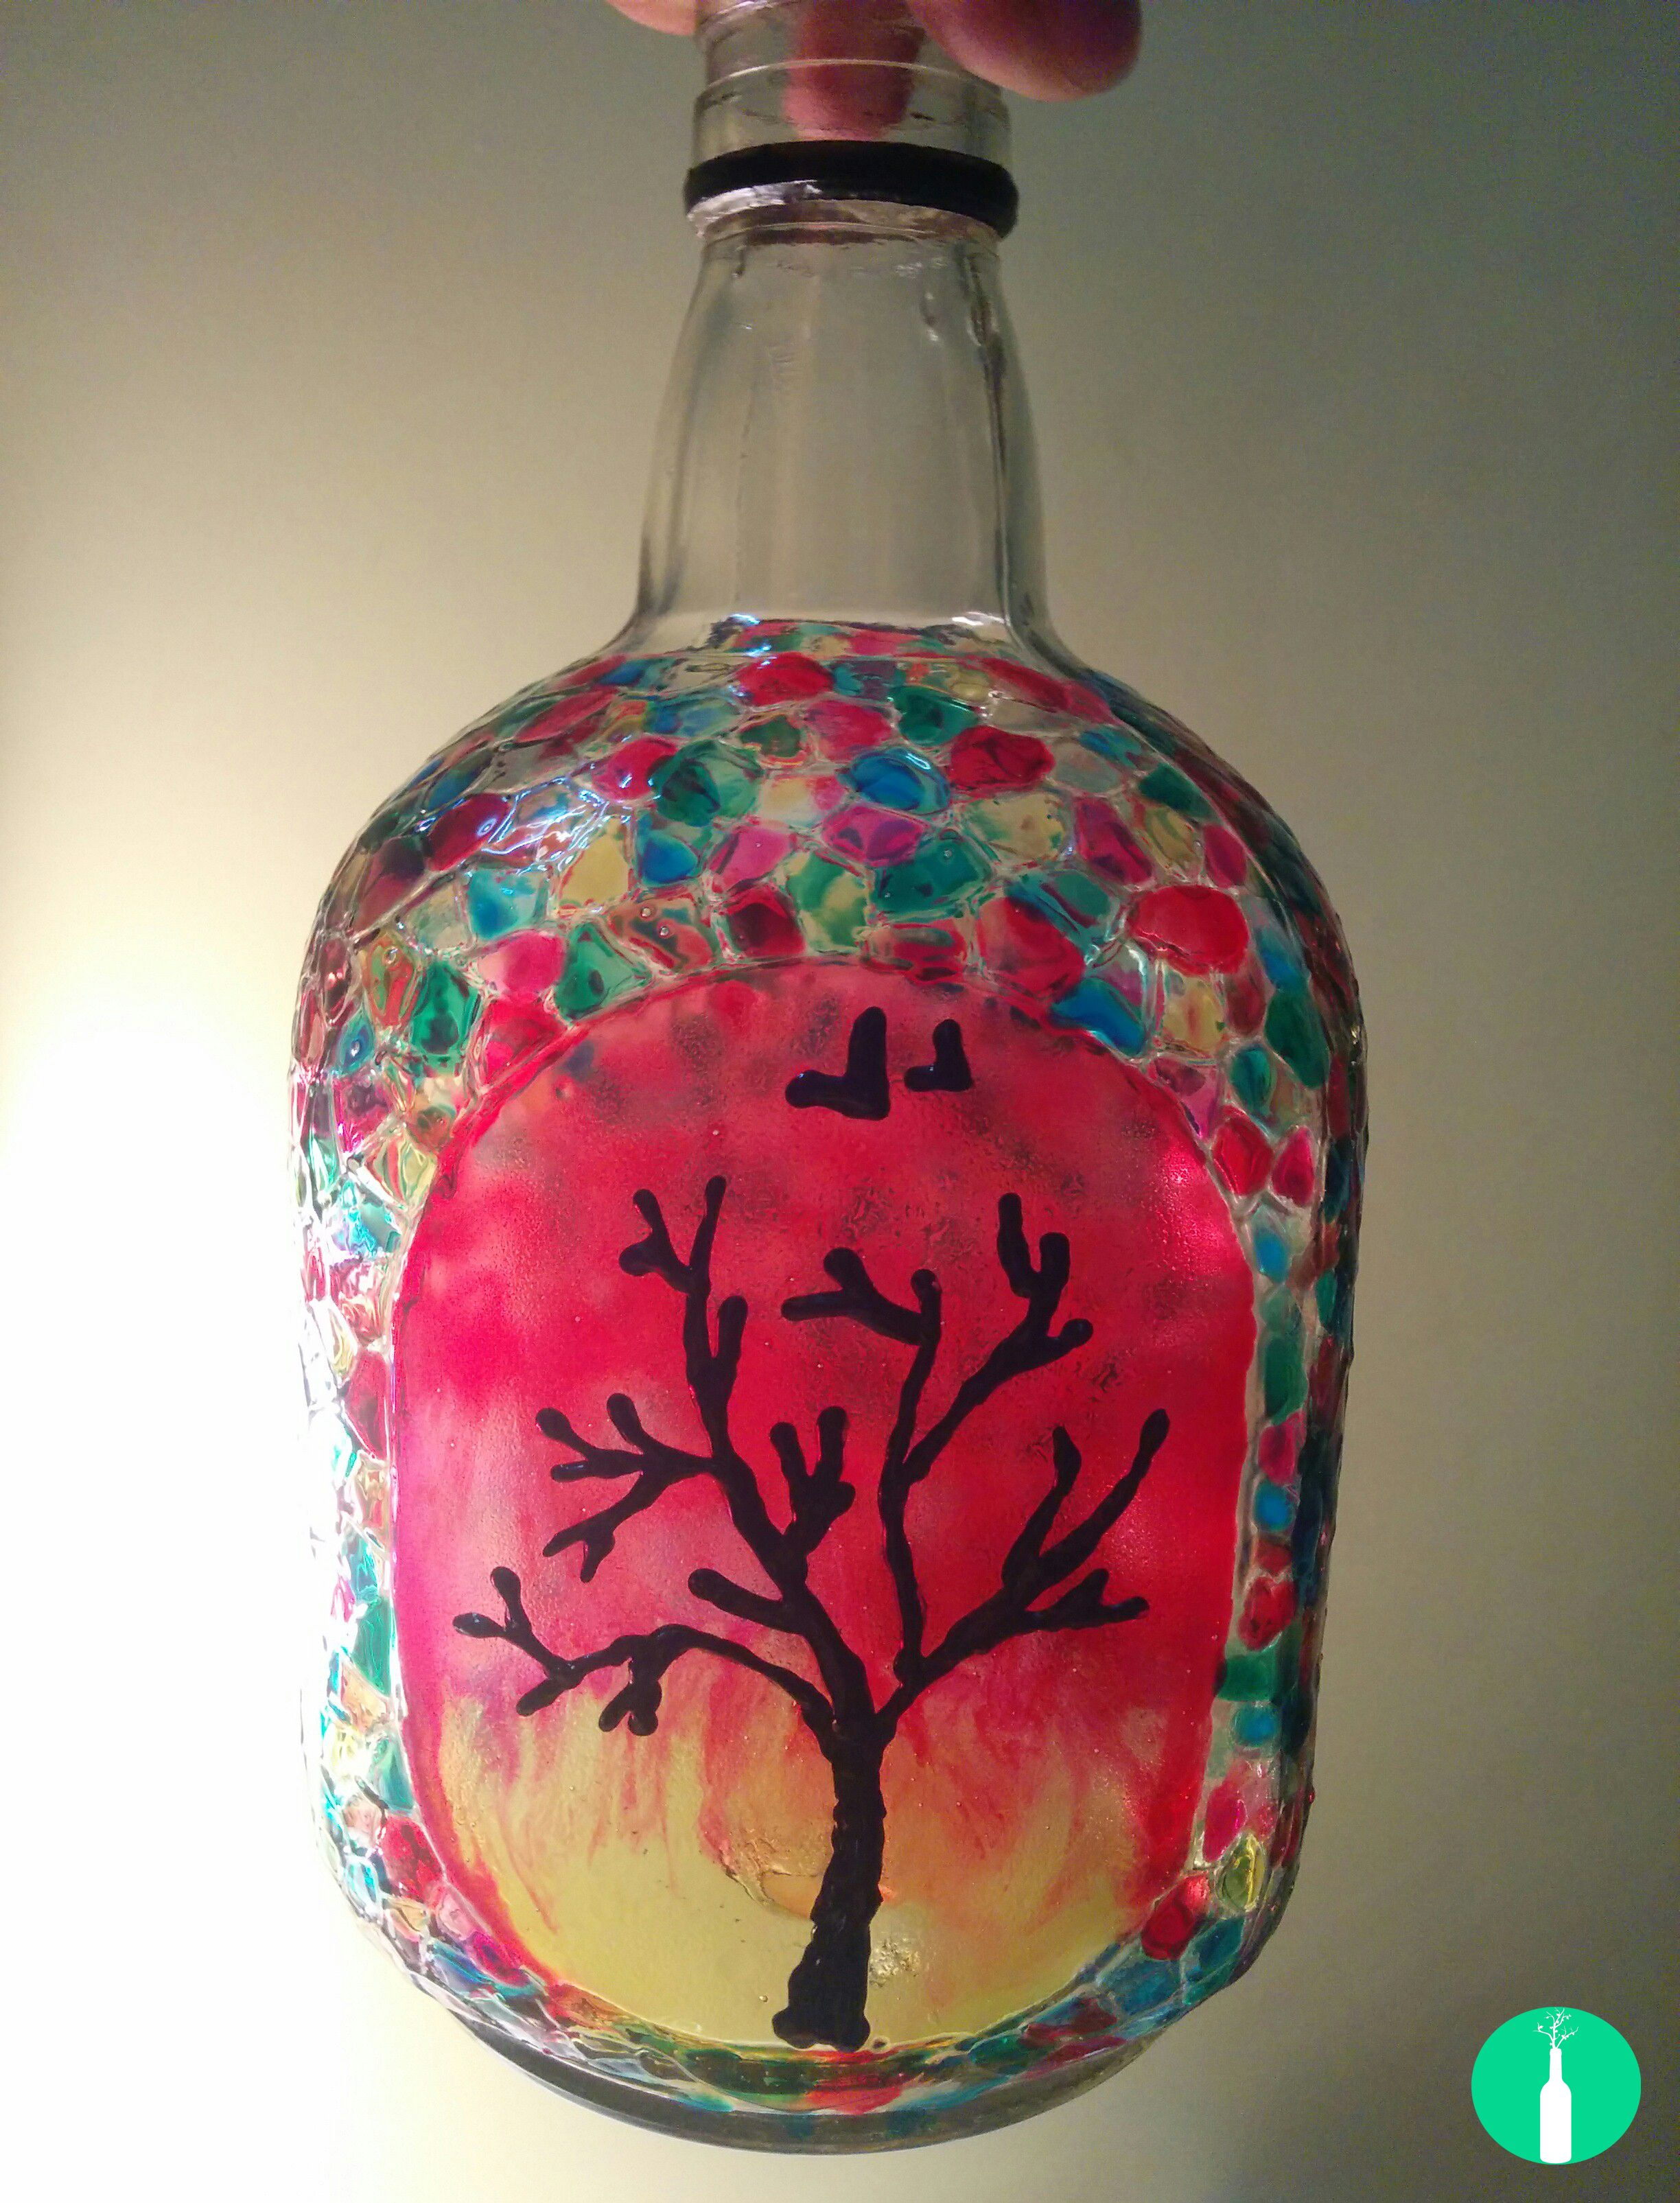 Painting Glass Lamps A Sunset Themed Painting On An Empty Old Monk Bottle Hand